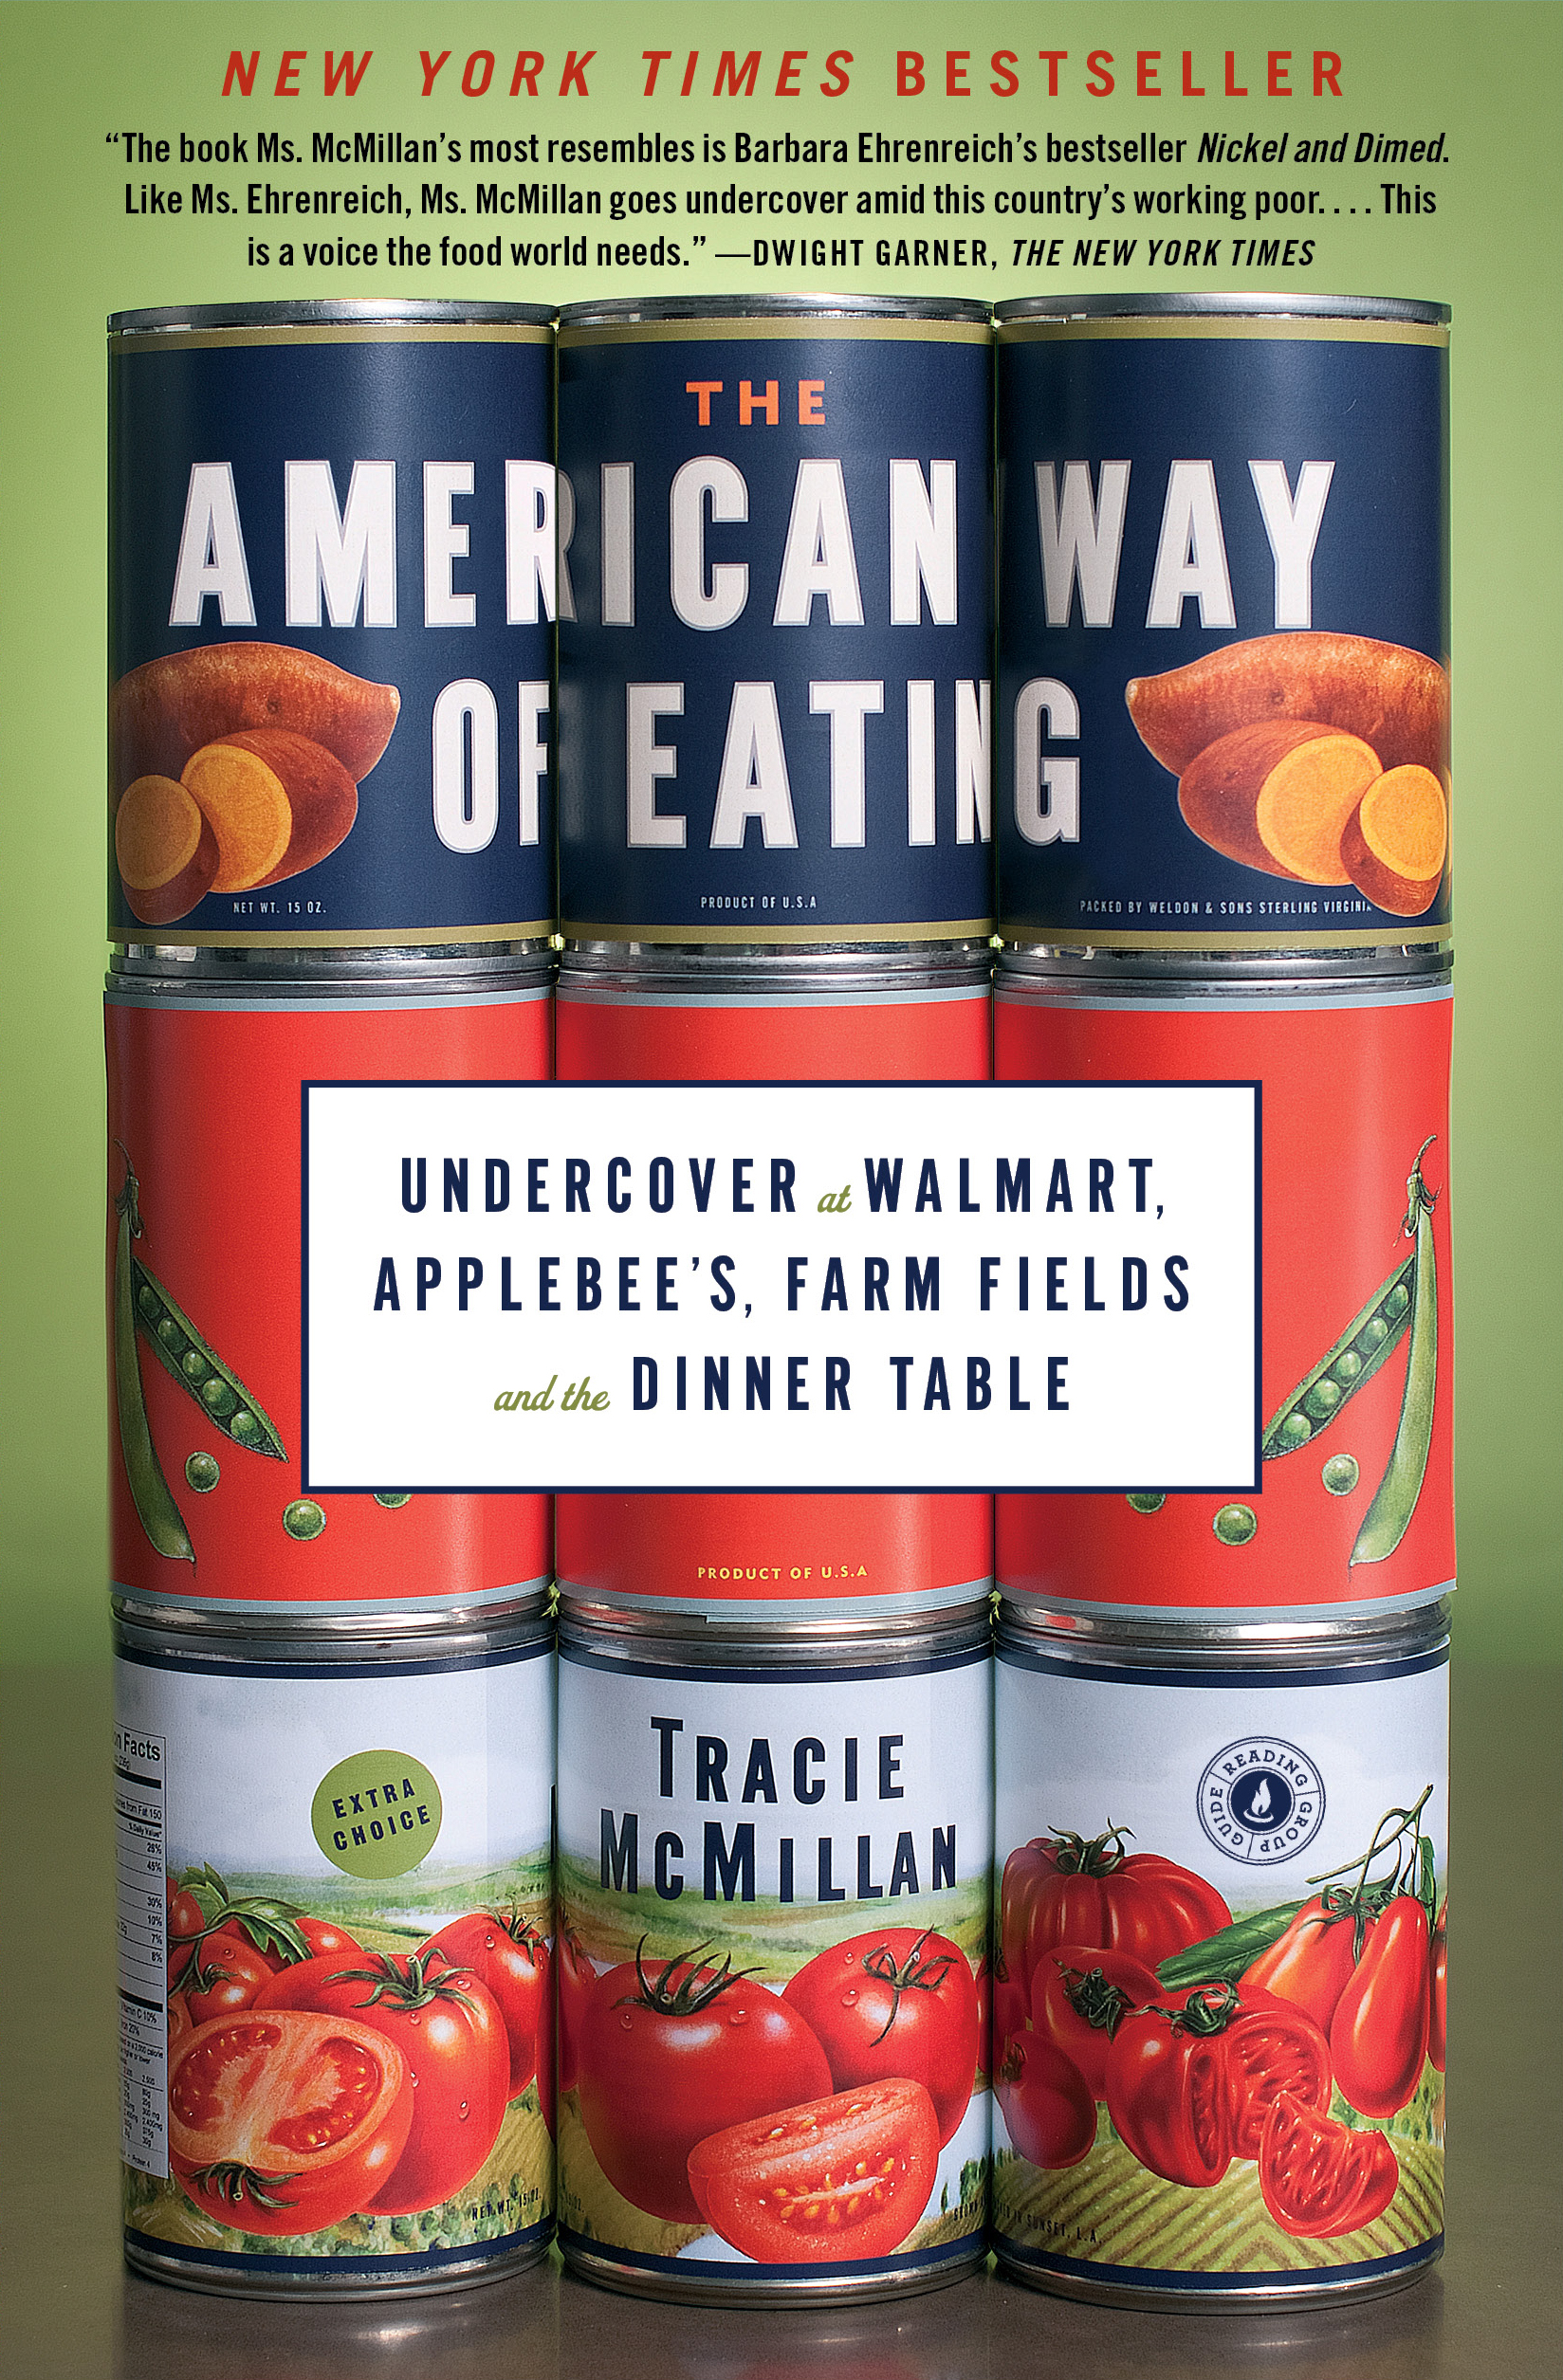 The american way of eating book by tracie mcmillan official cvr9781439171967 9781439171967 hr fandeluxe Gallery